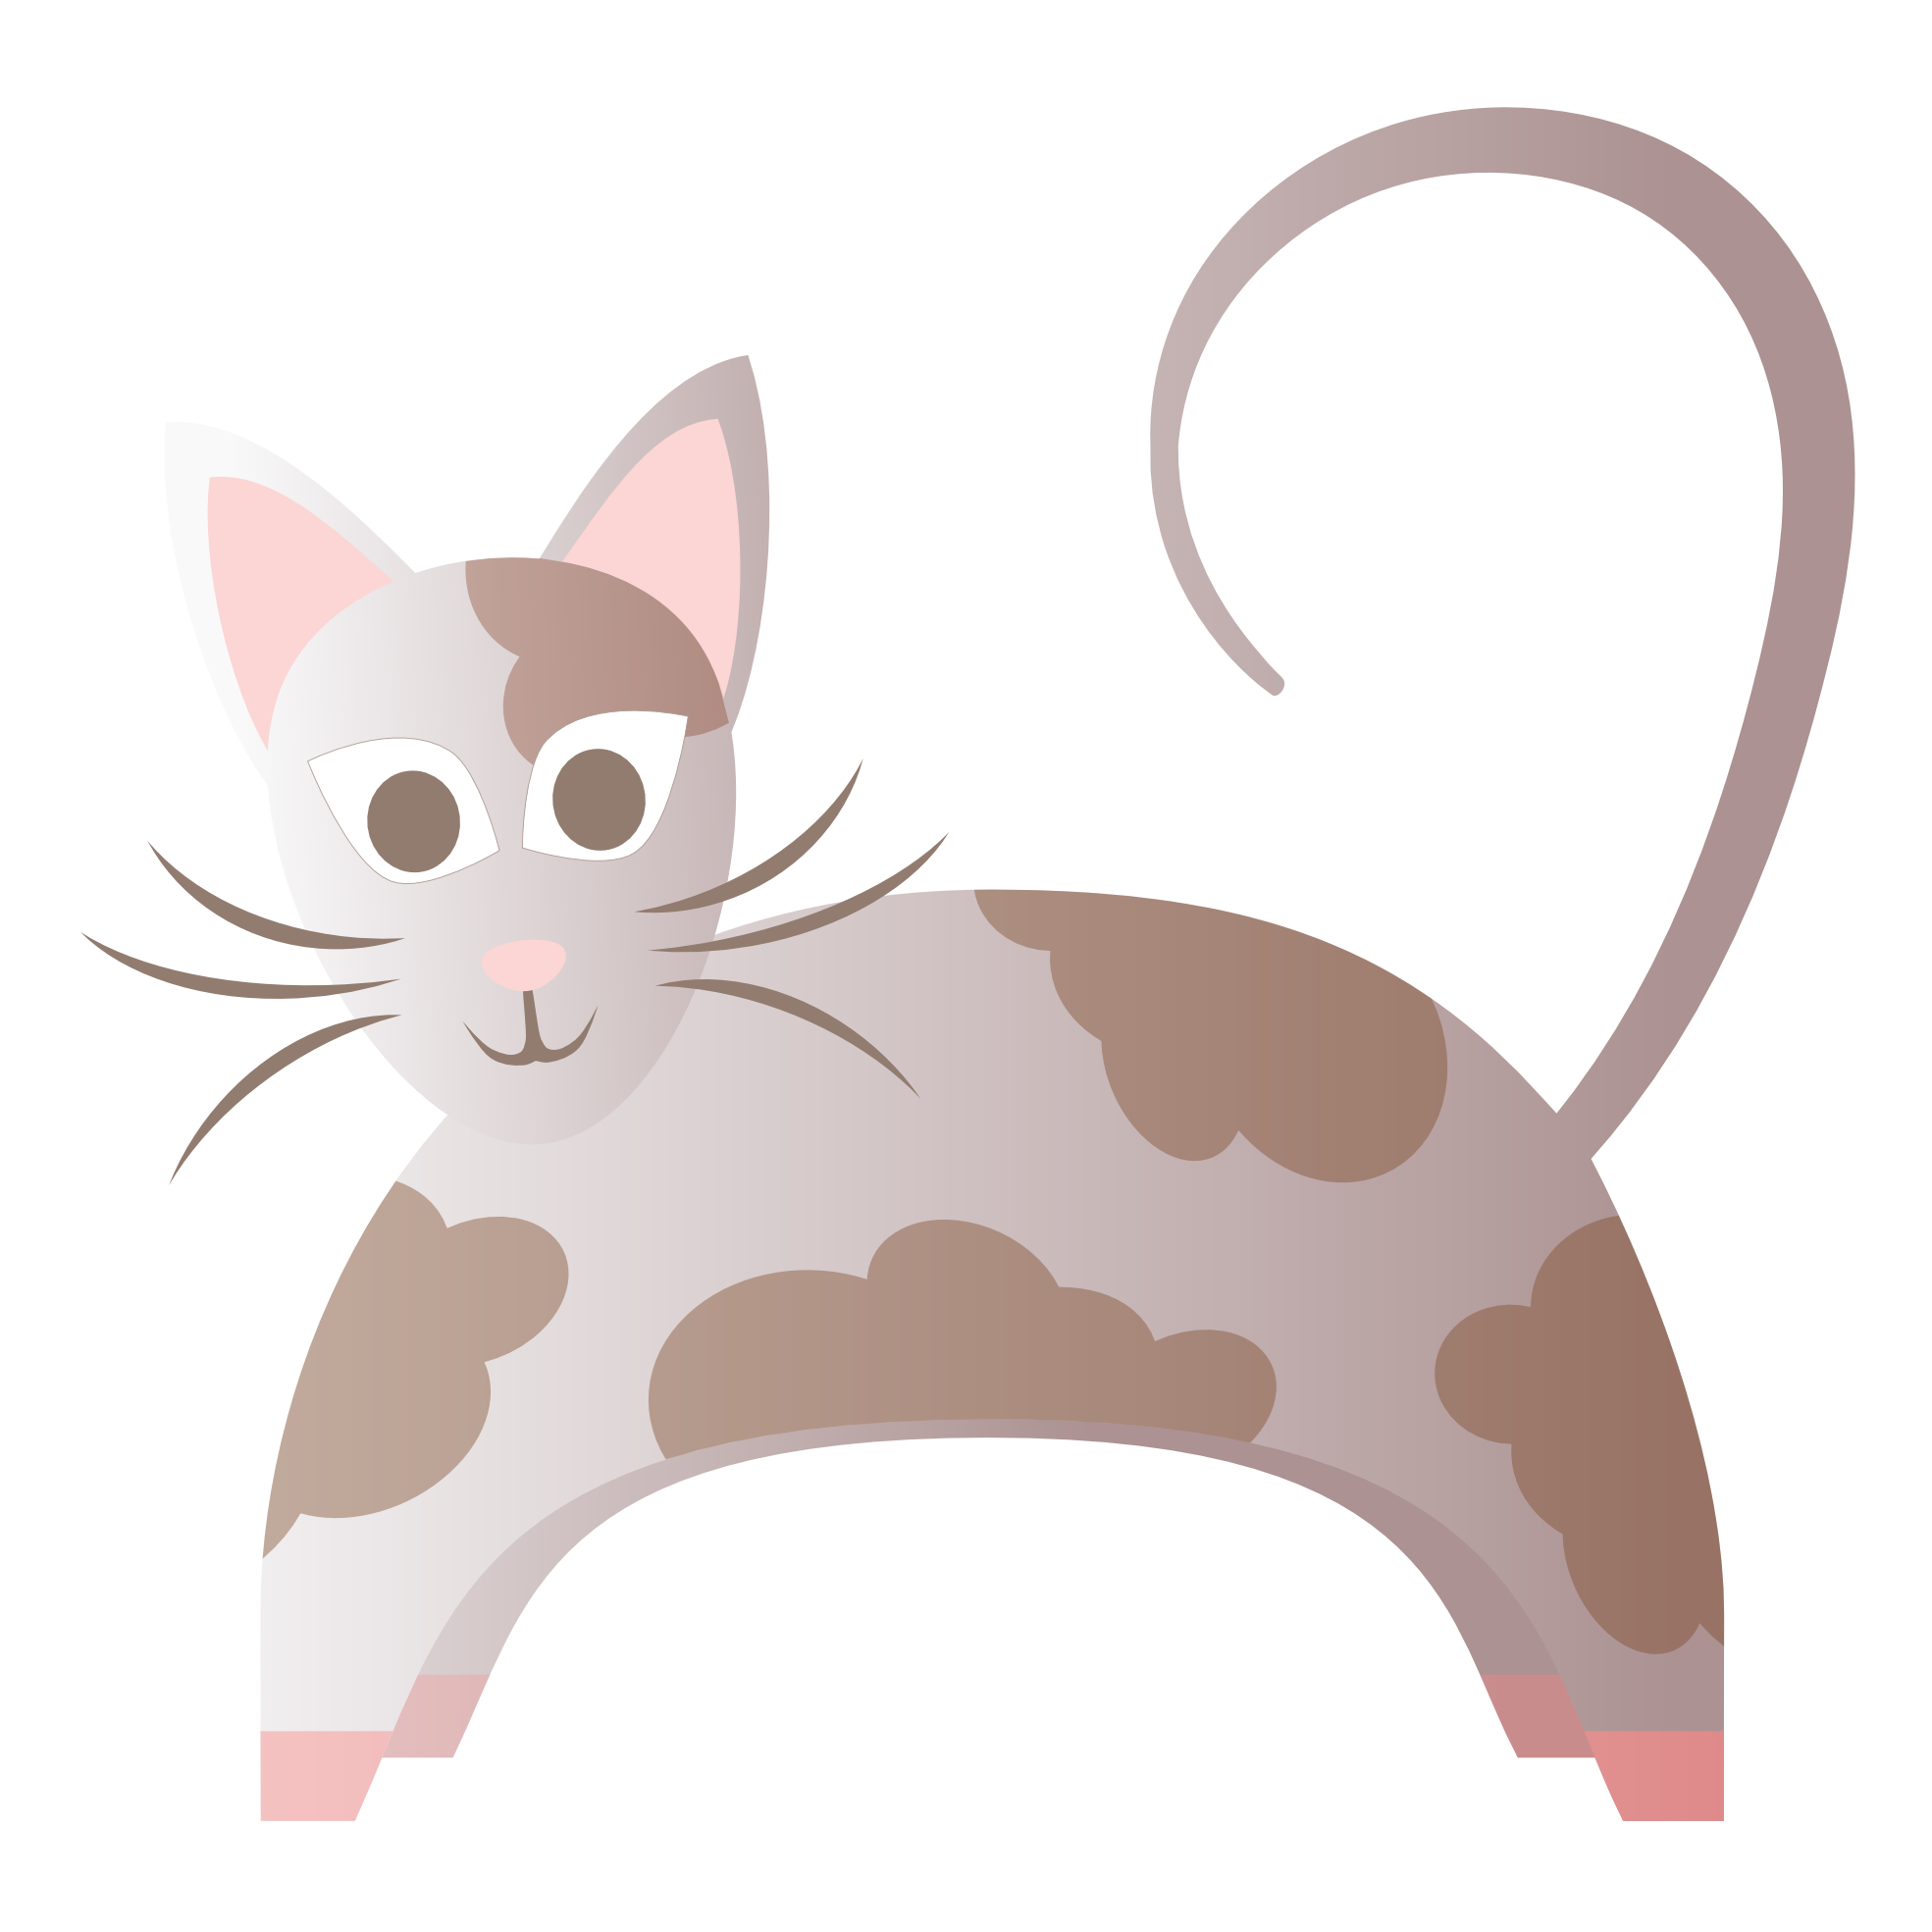 Clipart feed cat image free download clipartist.net » Clip Art » Abstract Cat Scalable Vector Graphics SVG image free download